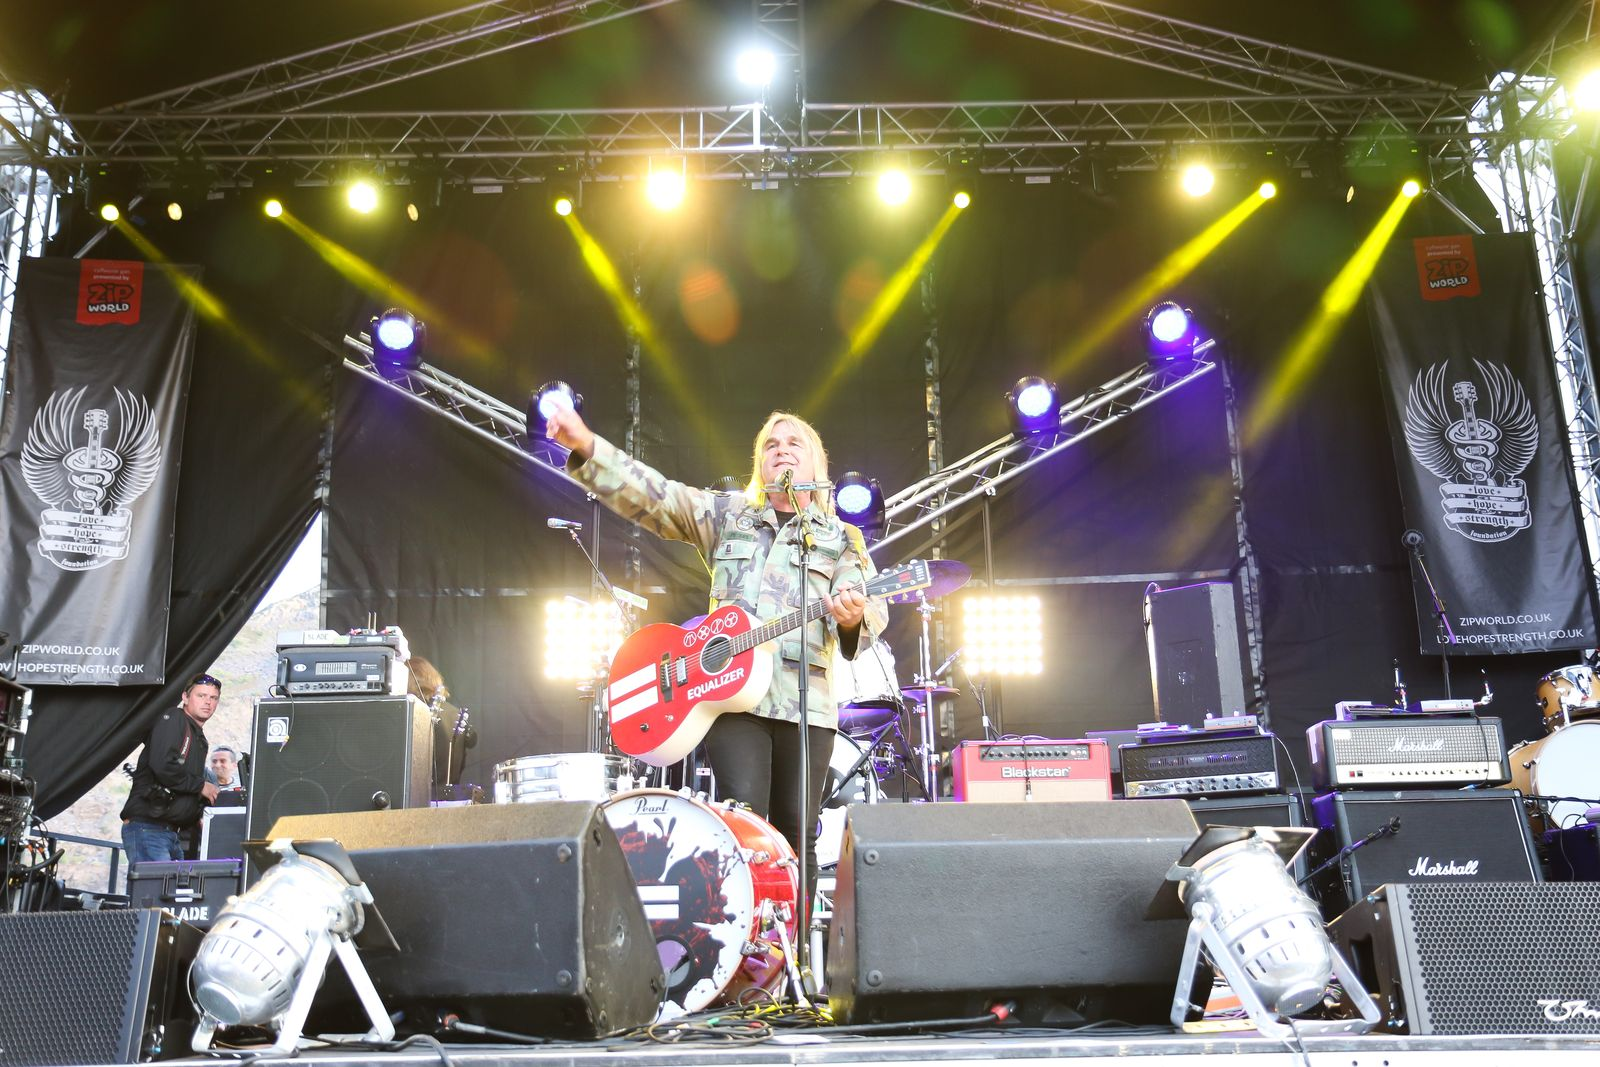 Mike Peters on stage at Zip World Rocks